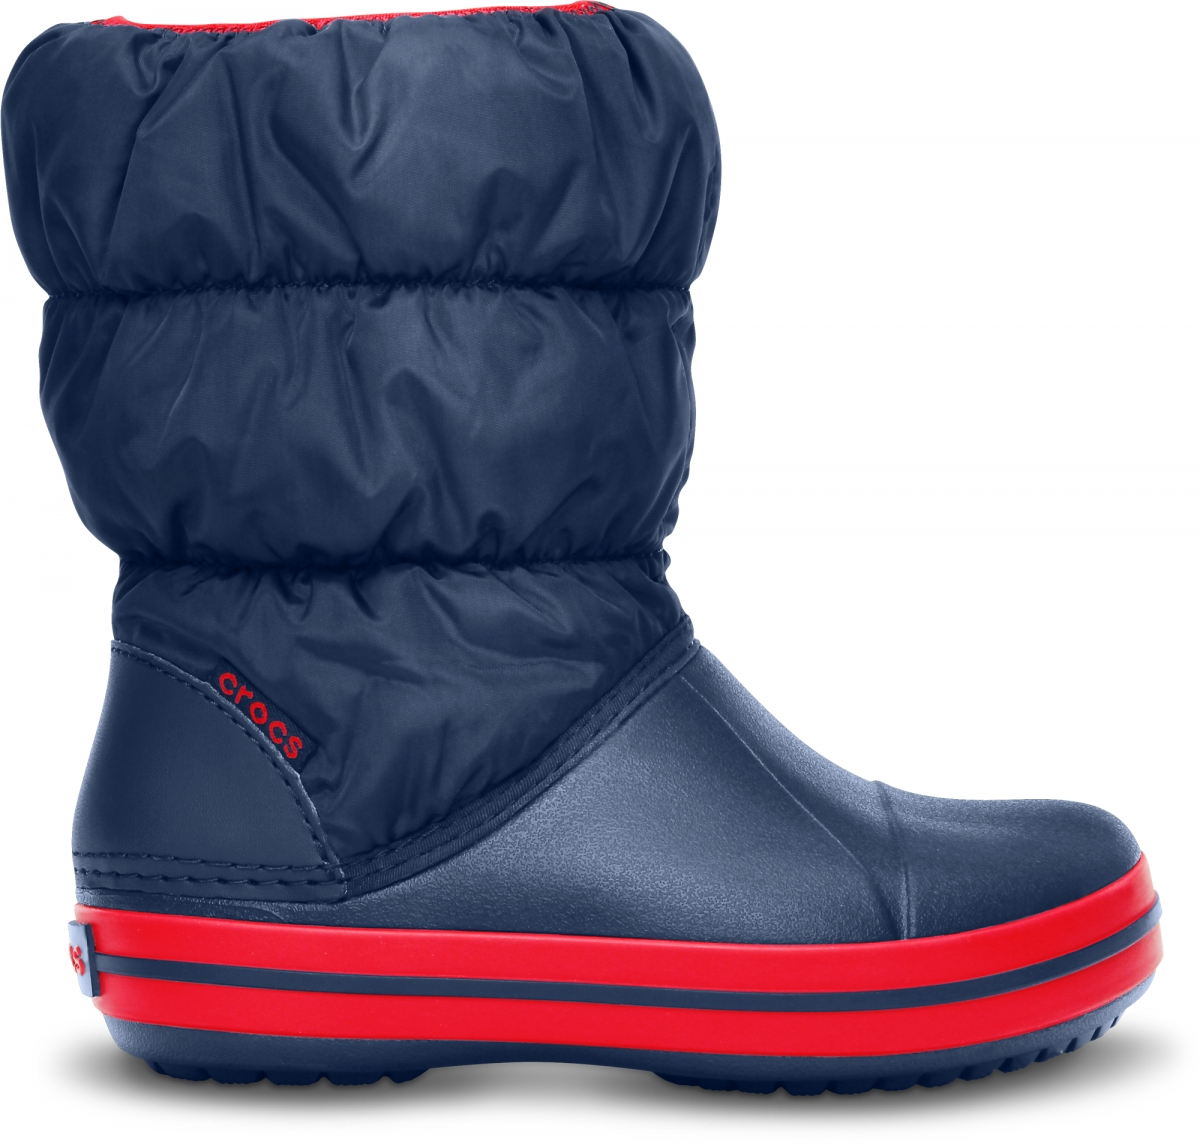 Crocs Winter Puff Boot Kids - Navy/Red, C8 (24-25)